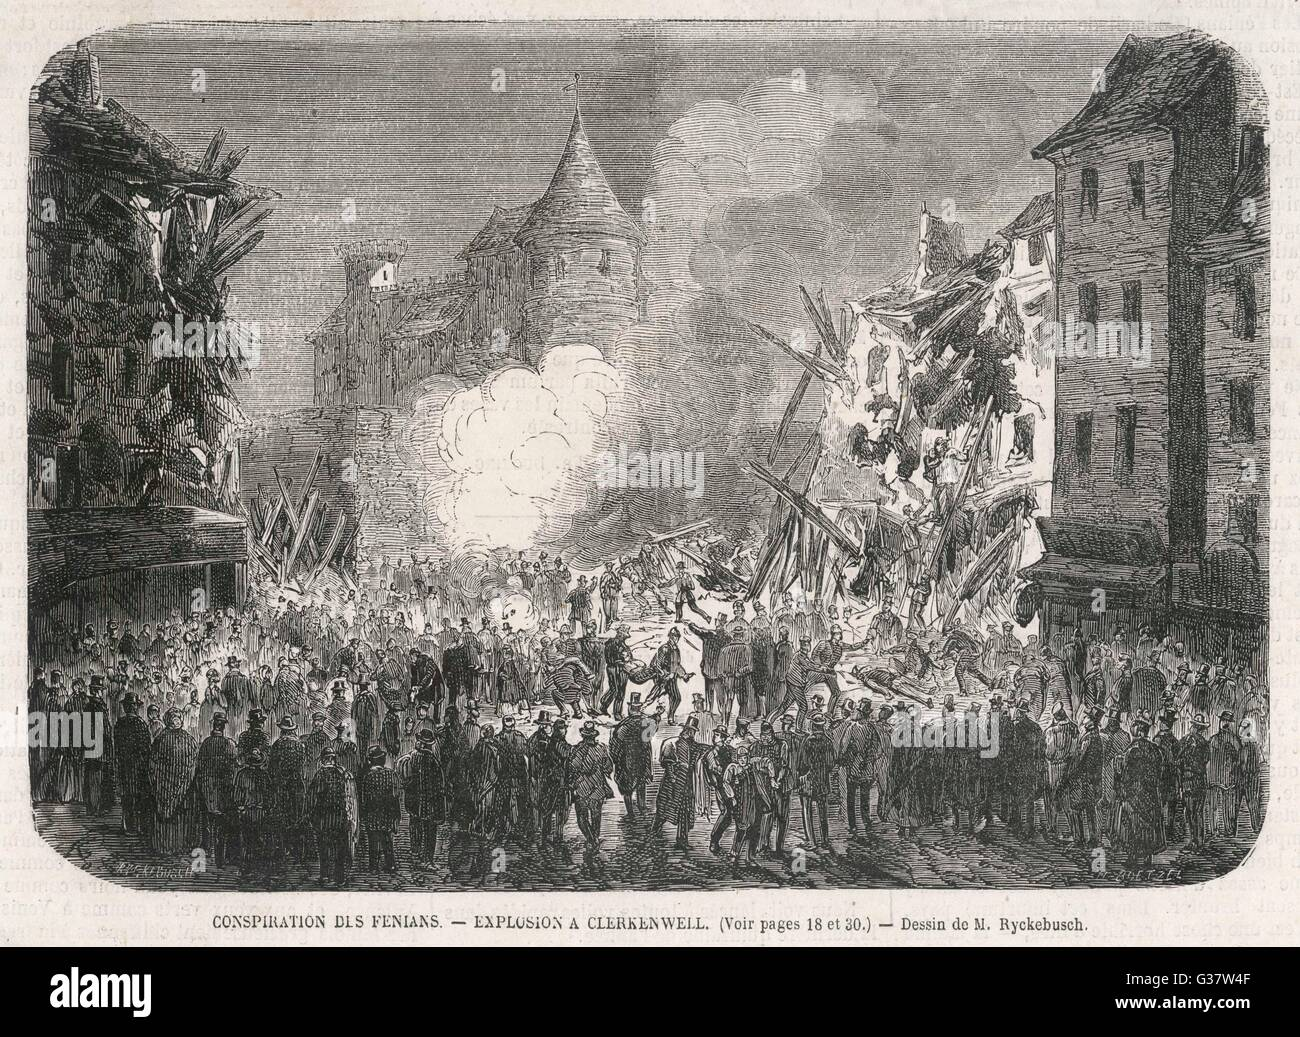 Fenian cause explosions at  Clerkenwell, London         Date: 1868 - Stock Image